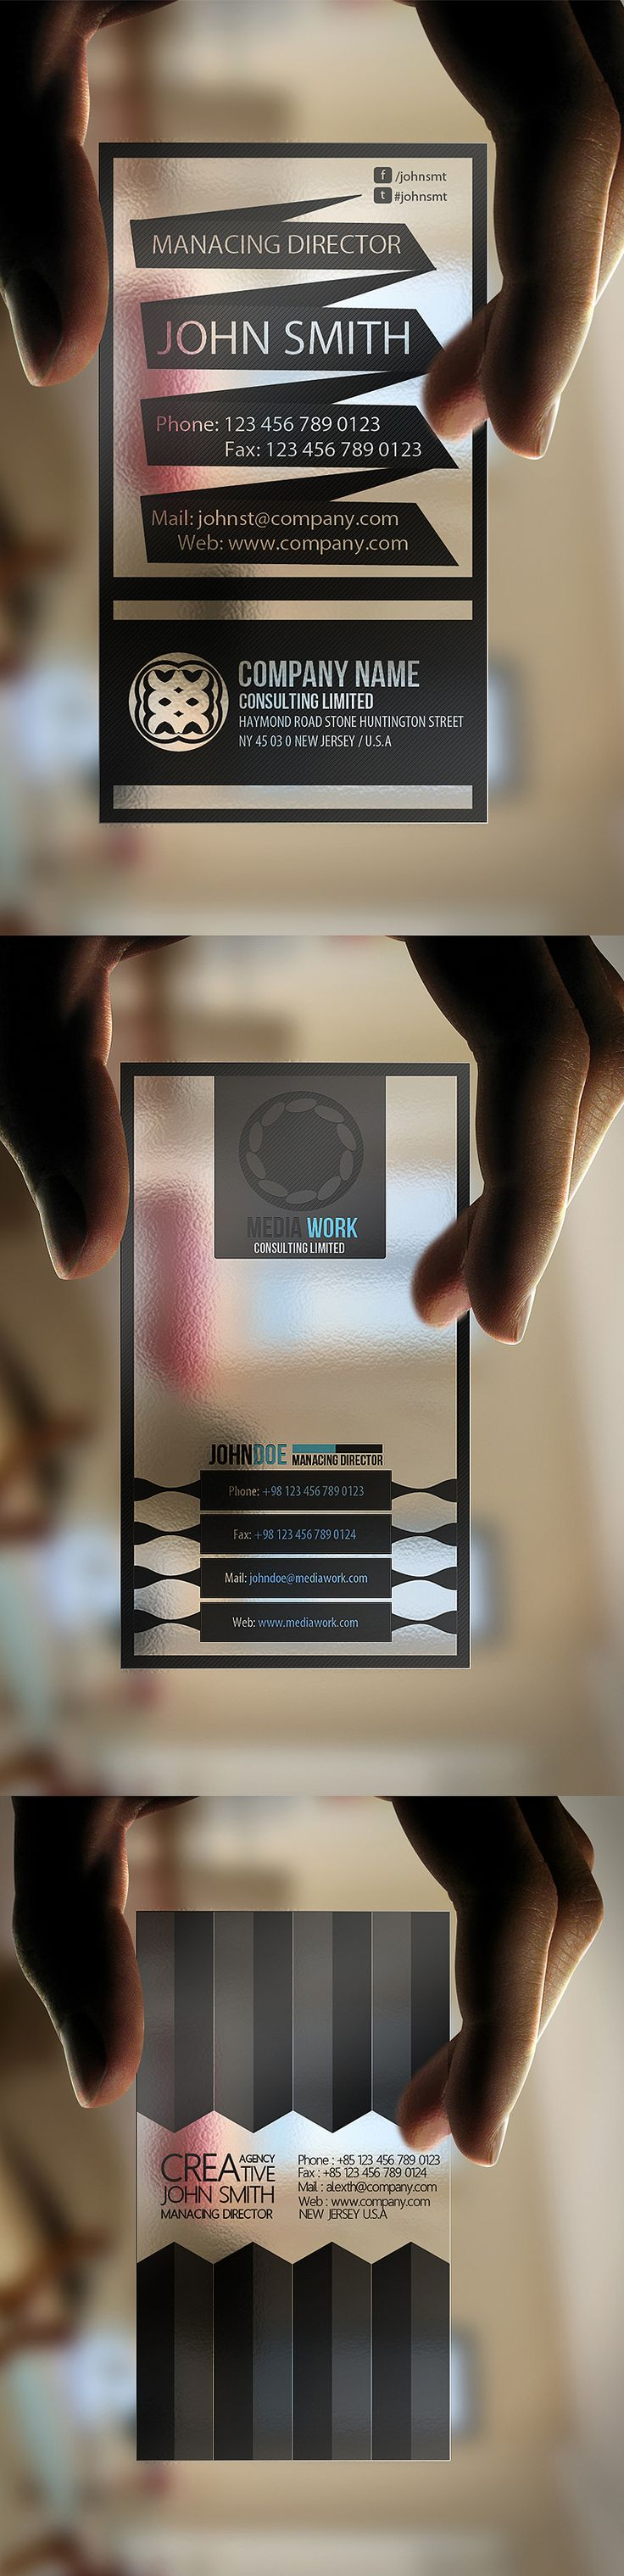 Best 25 Transparent business cards ideas on Pinterest